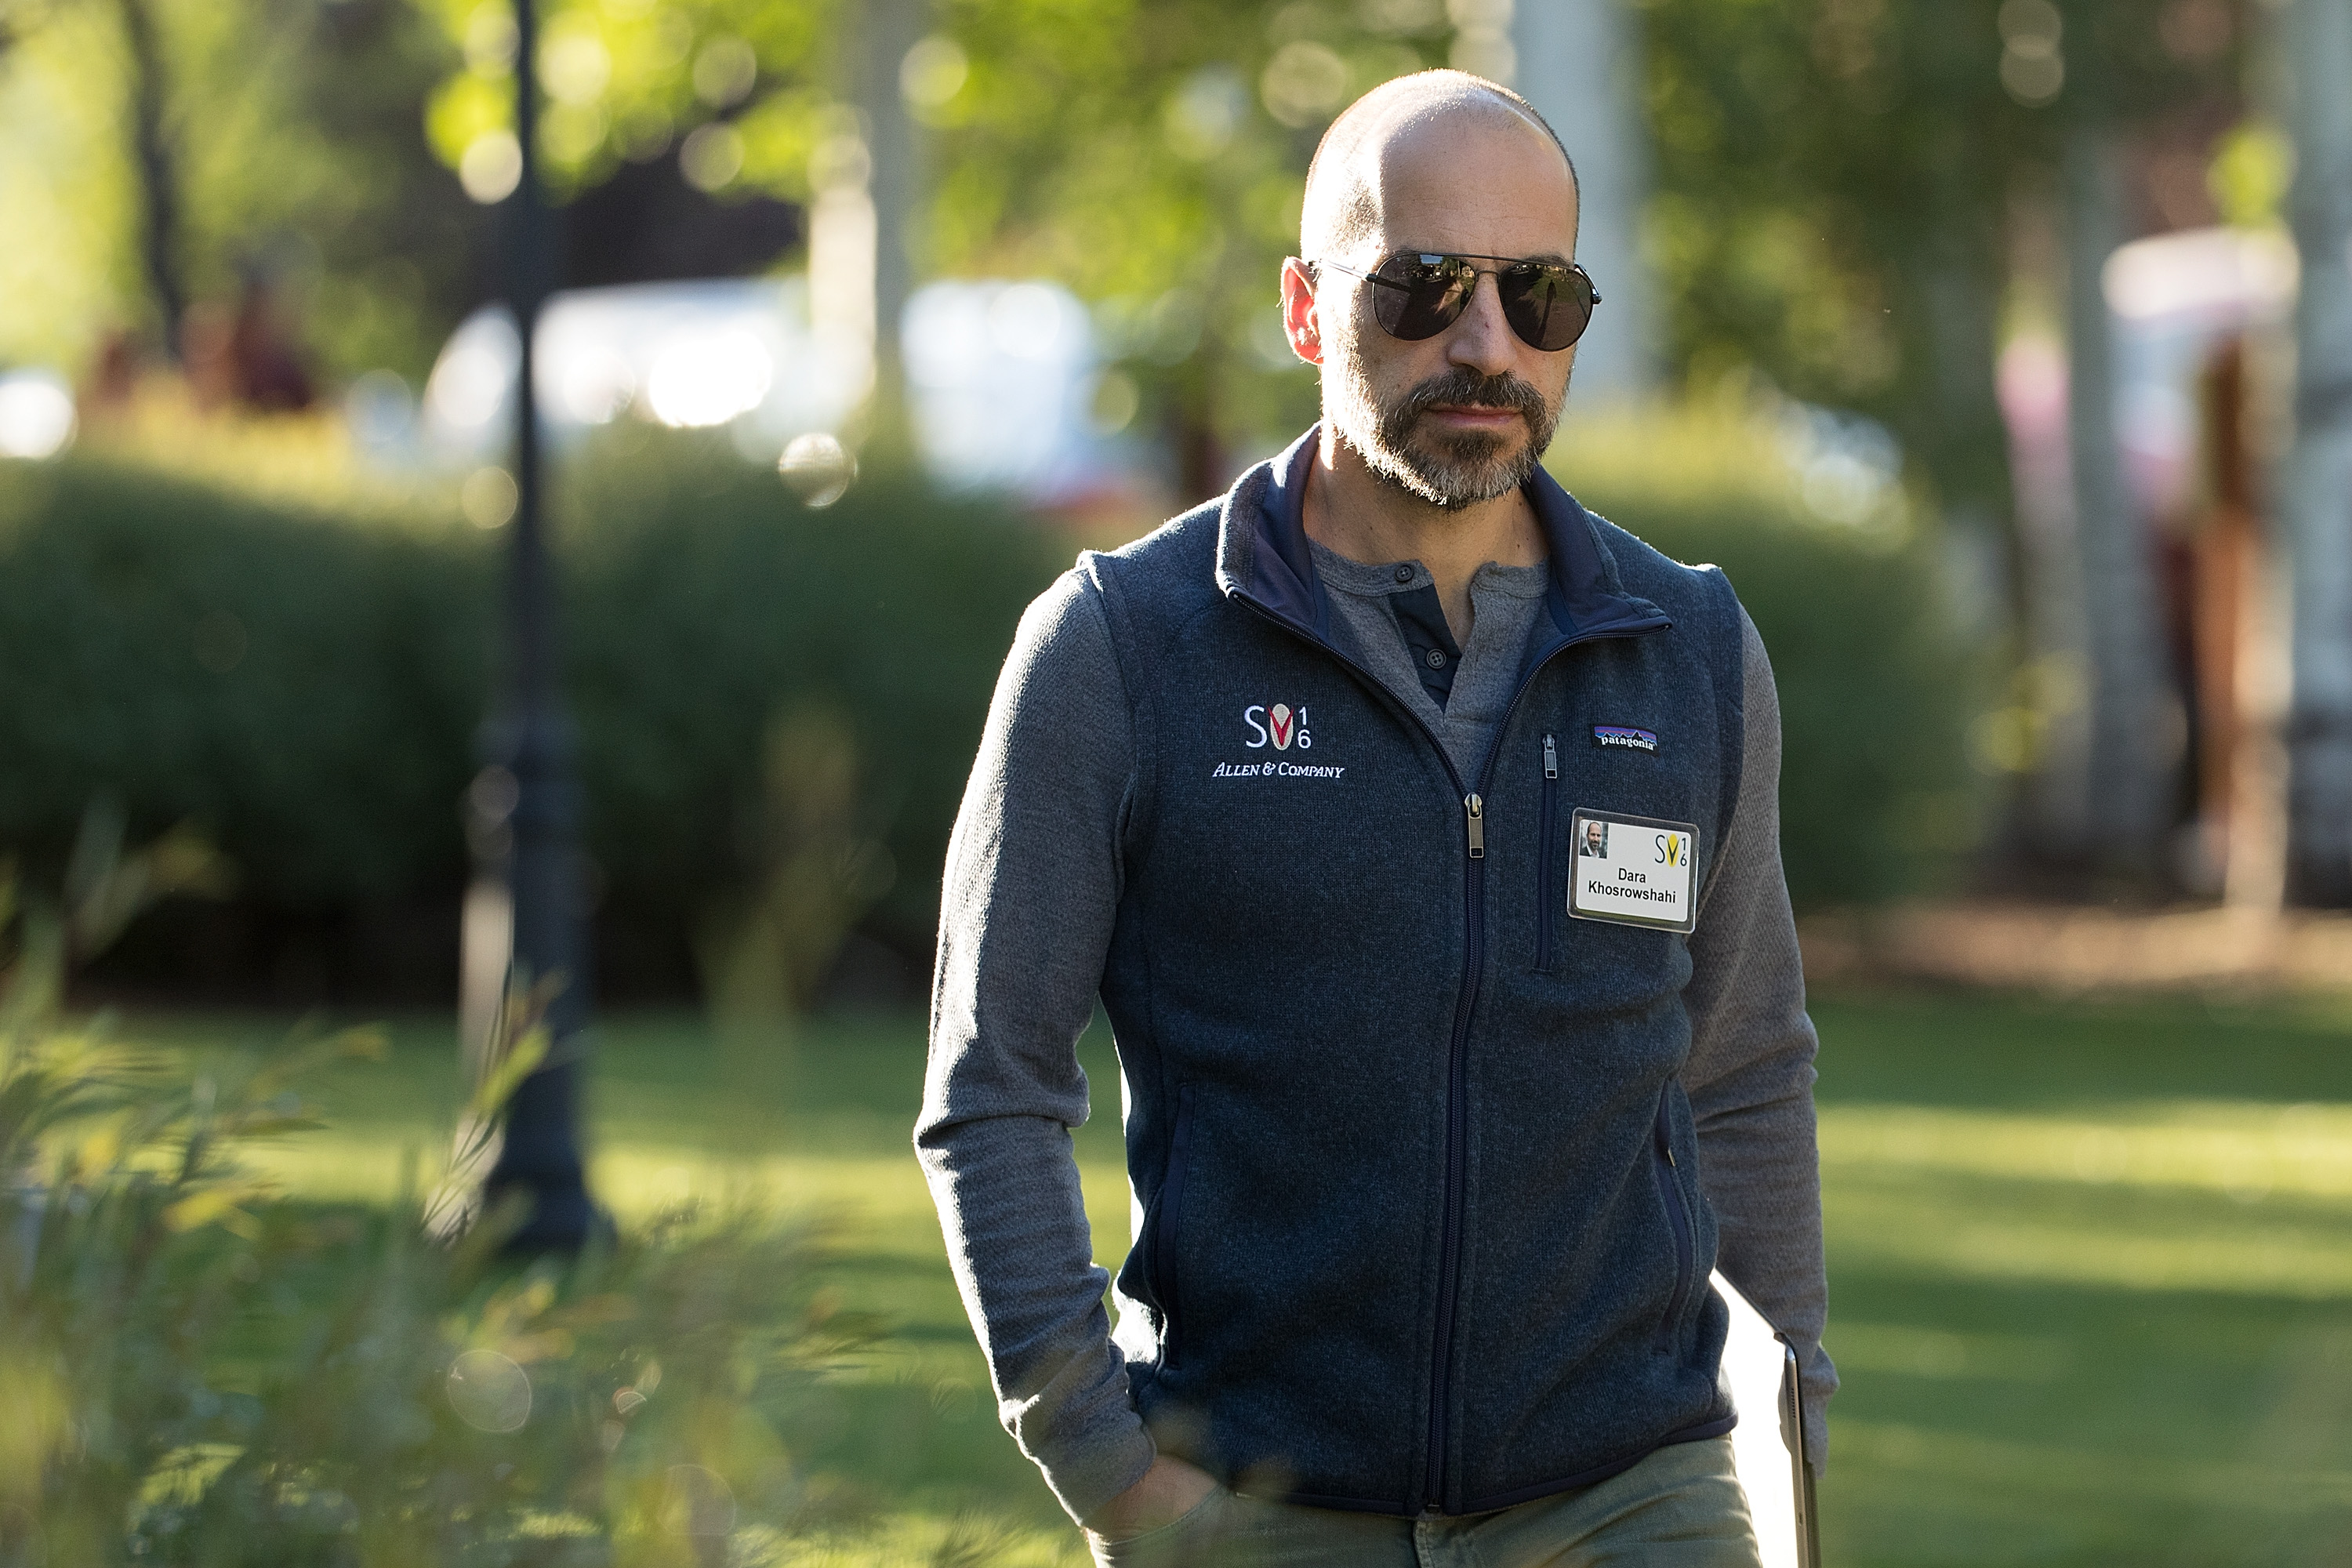 Uber CEO to meet London transport chief after license loss